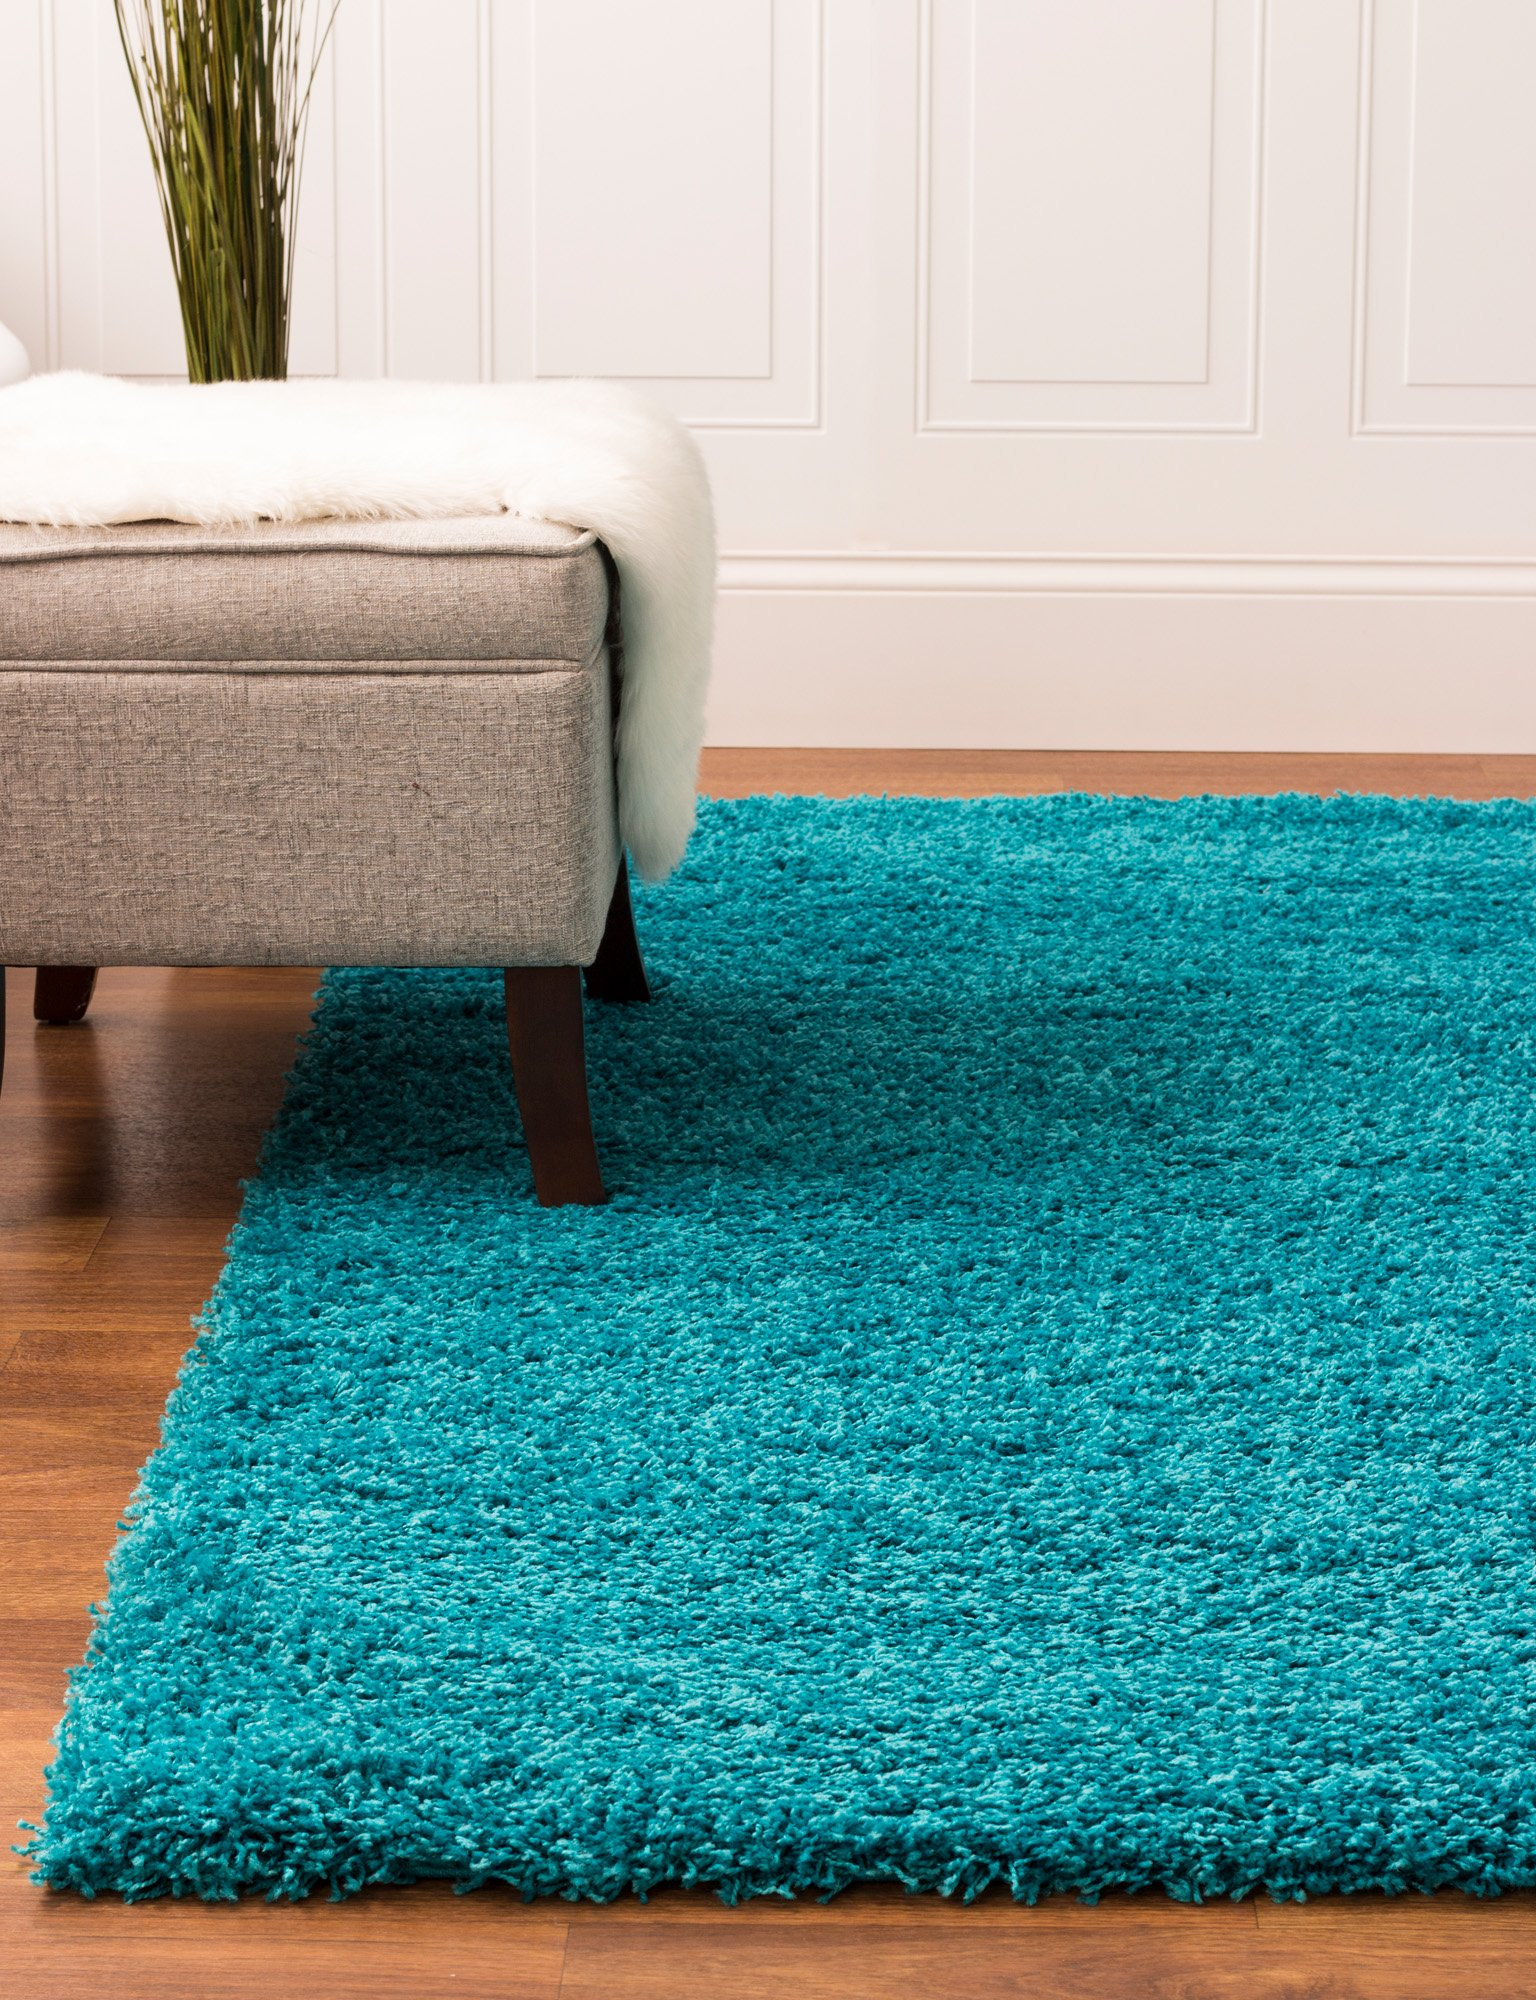 Super Area Rugs Solid Cozy Shag Rug For Home Decor 5 X 8 Turquoise Buy Online In Grenada At Grenada Desertcart Com Productid 42822193